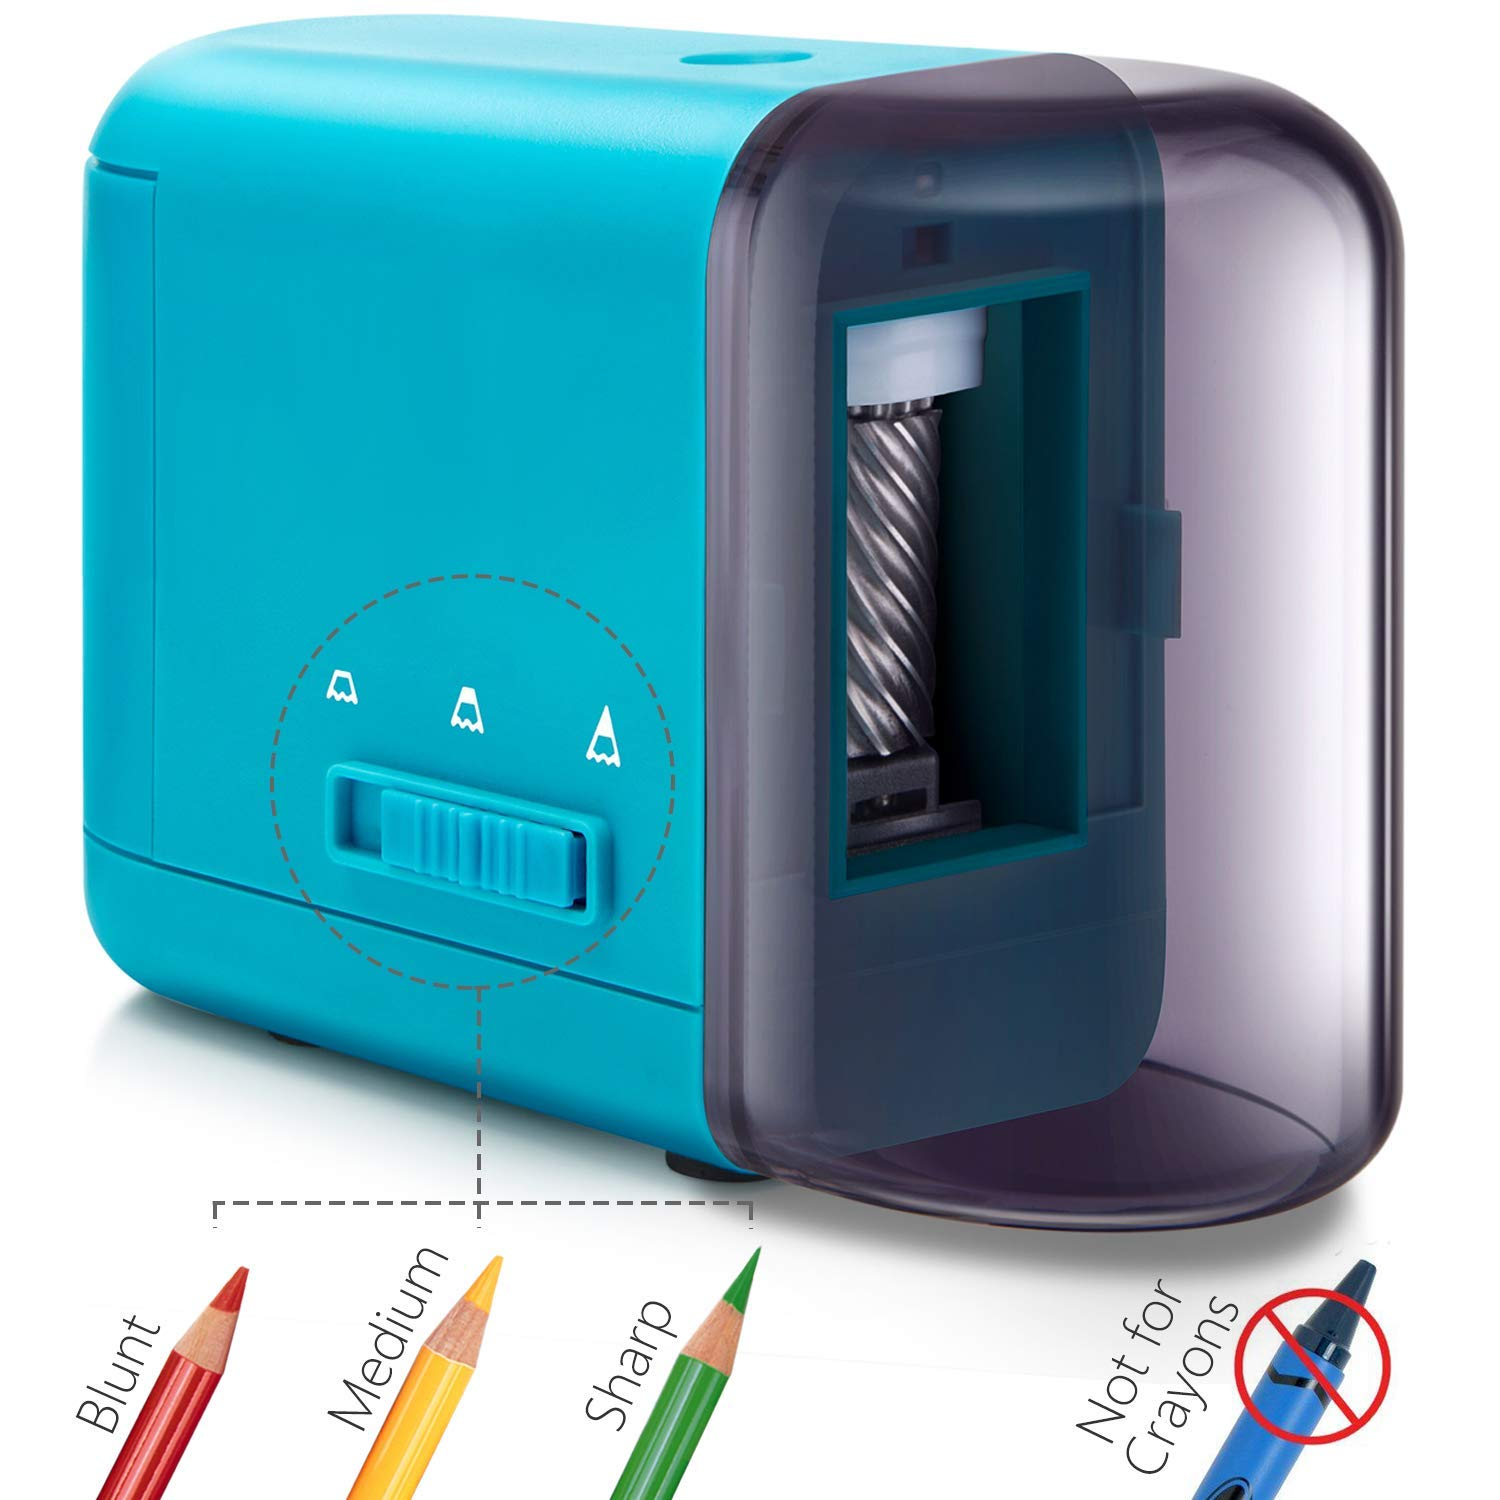 Colored Pencil Sharpeners Battery Operated-USB&Electrical Pencil Sharpener for Artists,Electric Helical Blade Personal Pencil Sharpener for Corded No.2&Colored Pencils for Kids,Students,Classroom,Blue